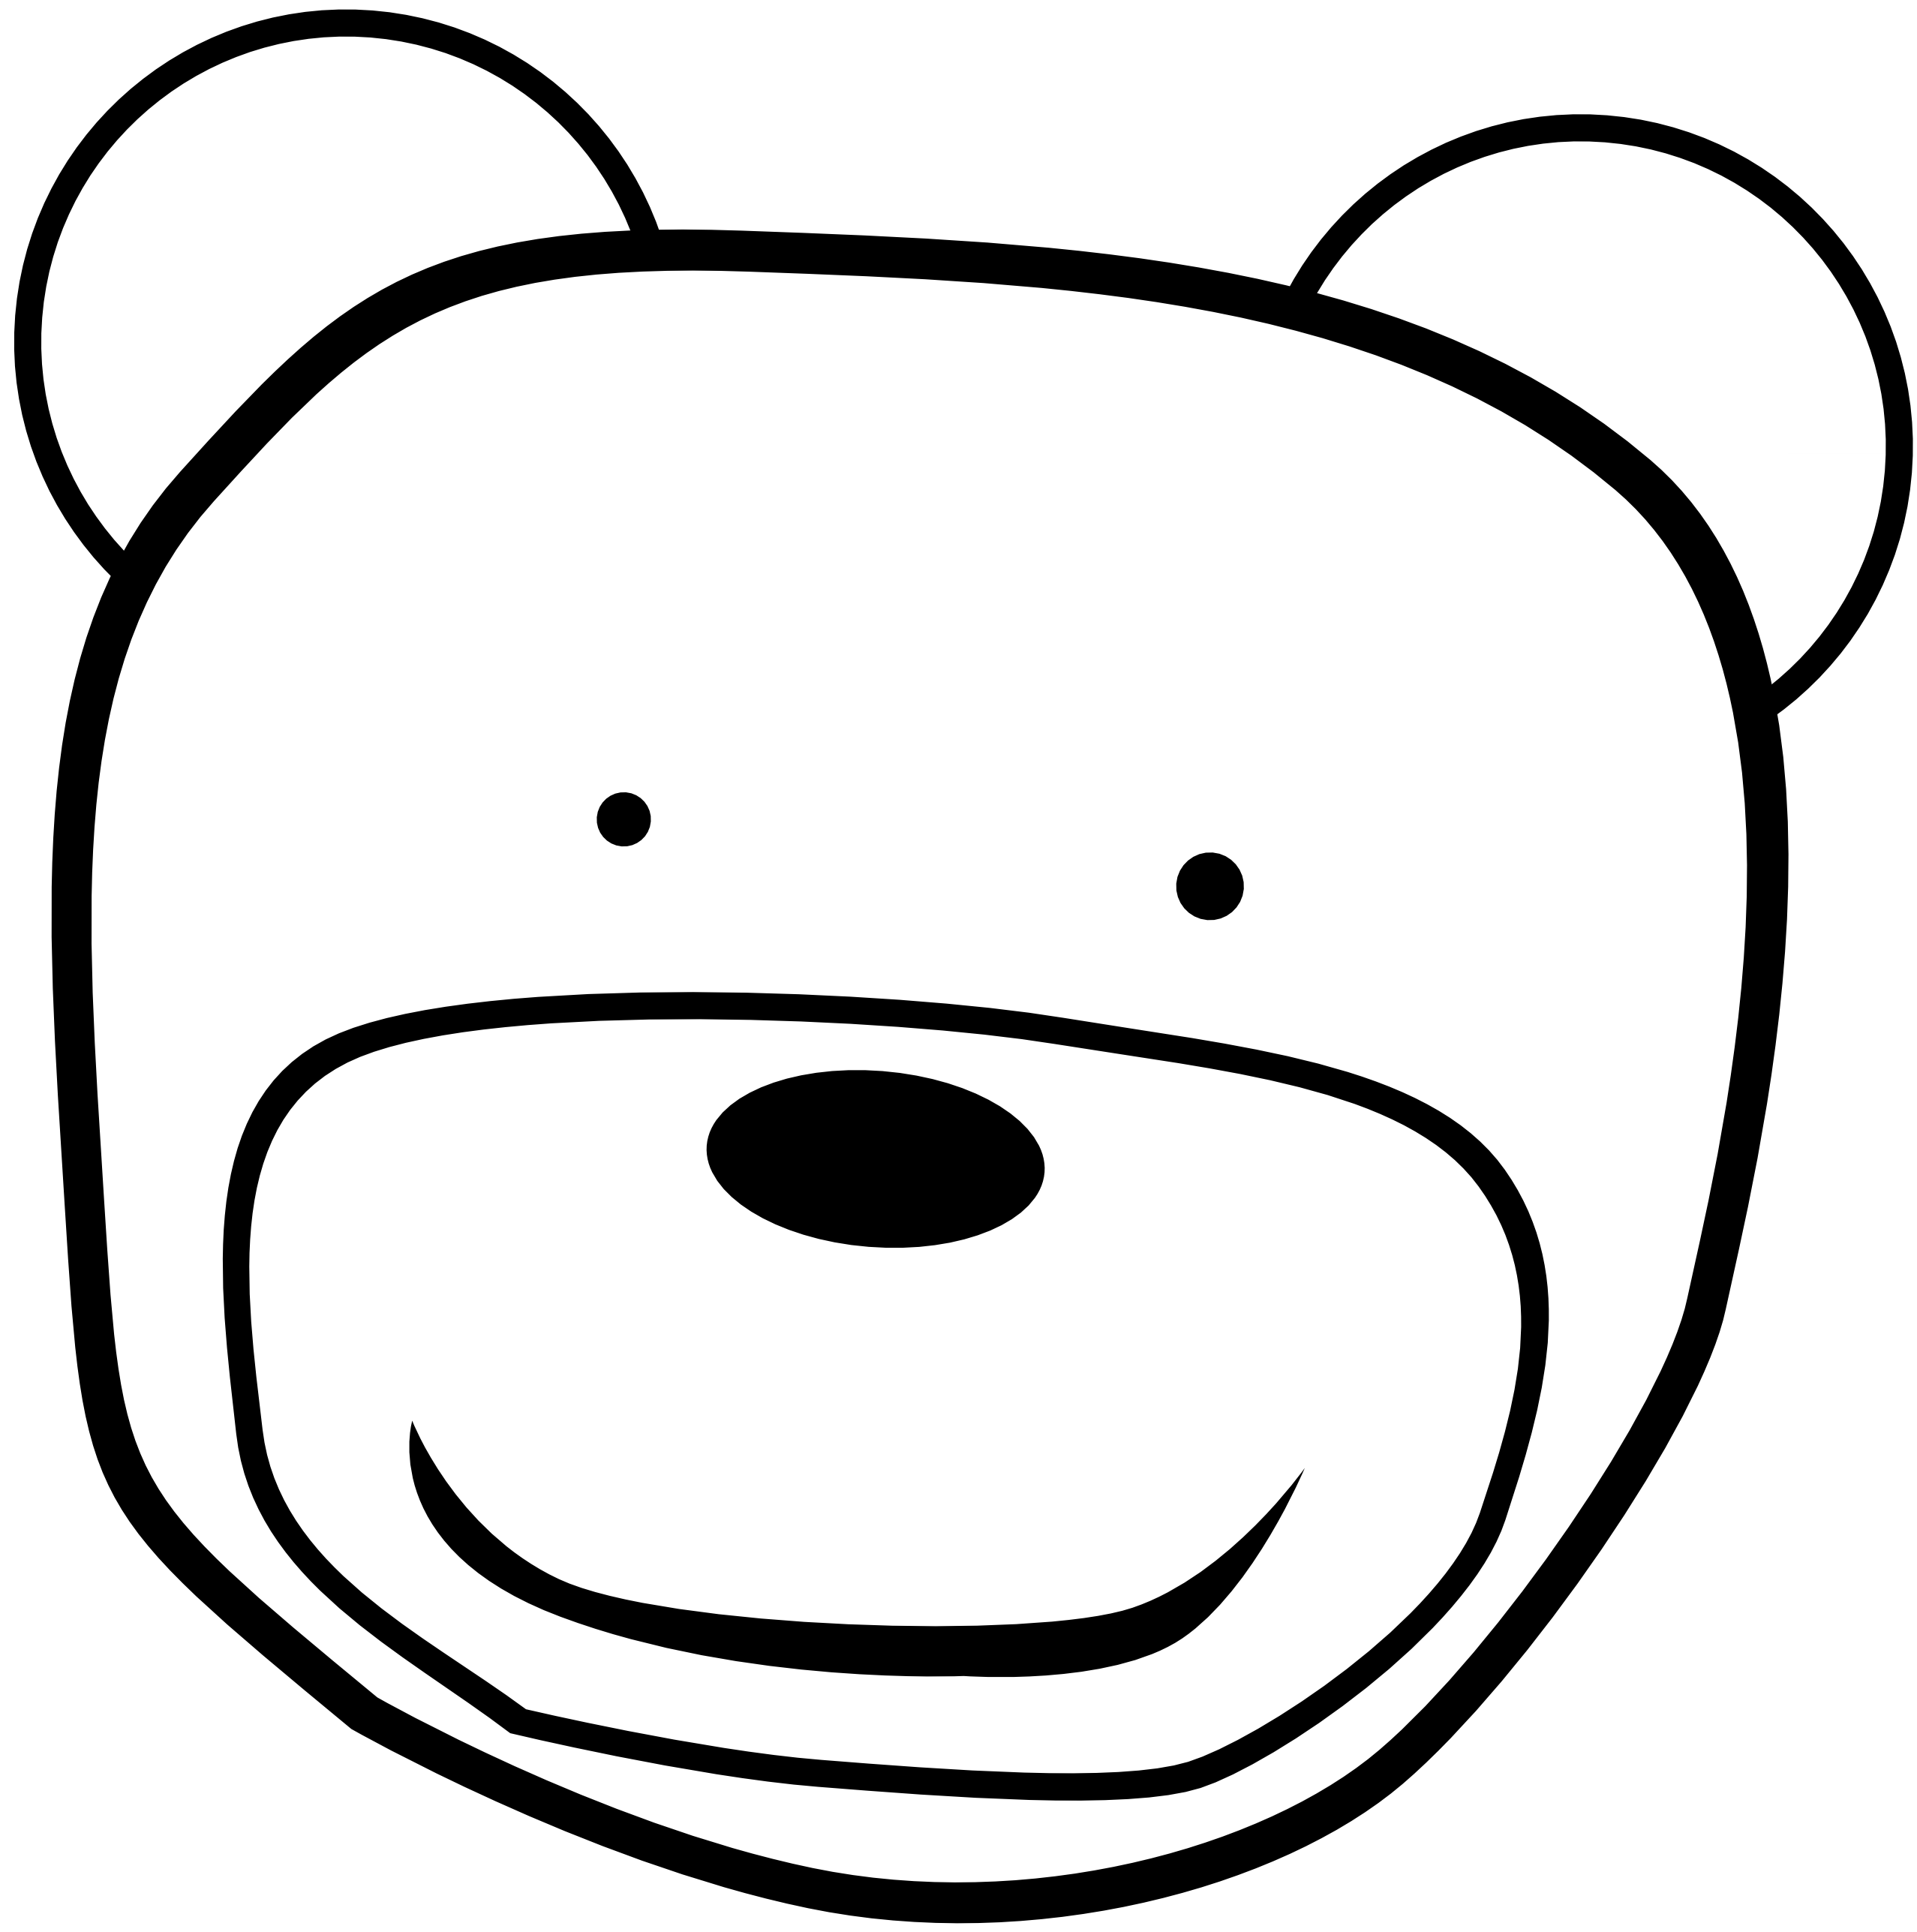 Clipart of a face of a sleeping bear clip art freeuse download Angry Bear Head Clip Art | Clipart Panda - Free Clipart Images clip art freeuse download